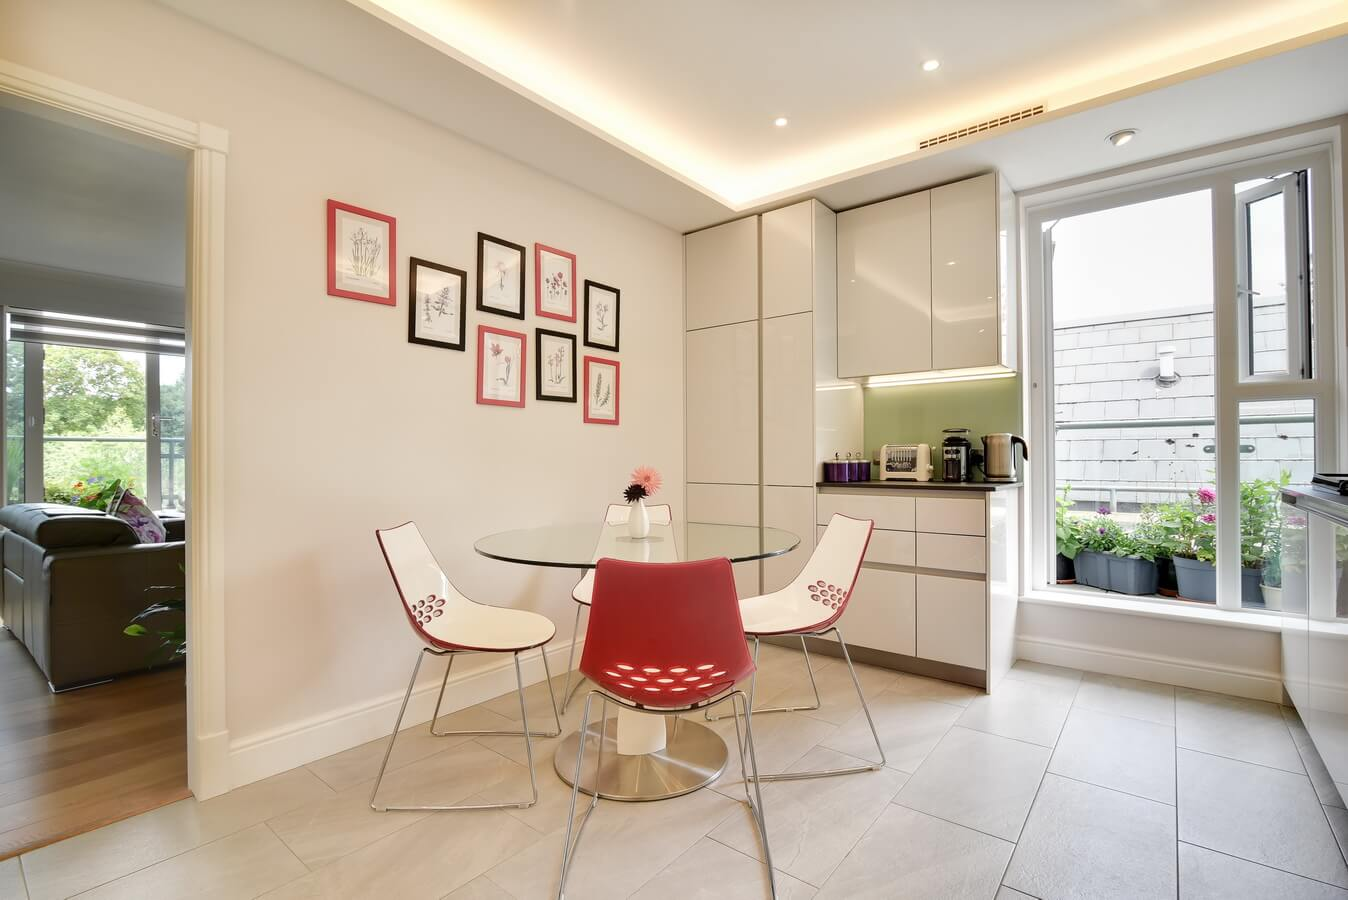 Kitchen-Sitting-Area-German-Schuller-London.jpg